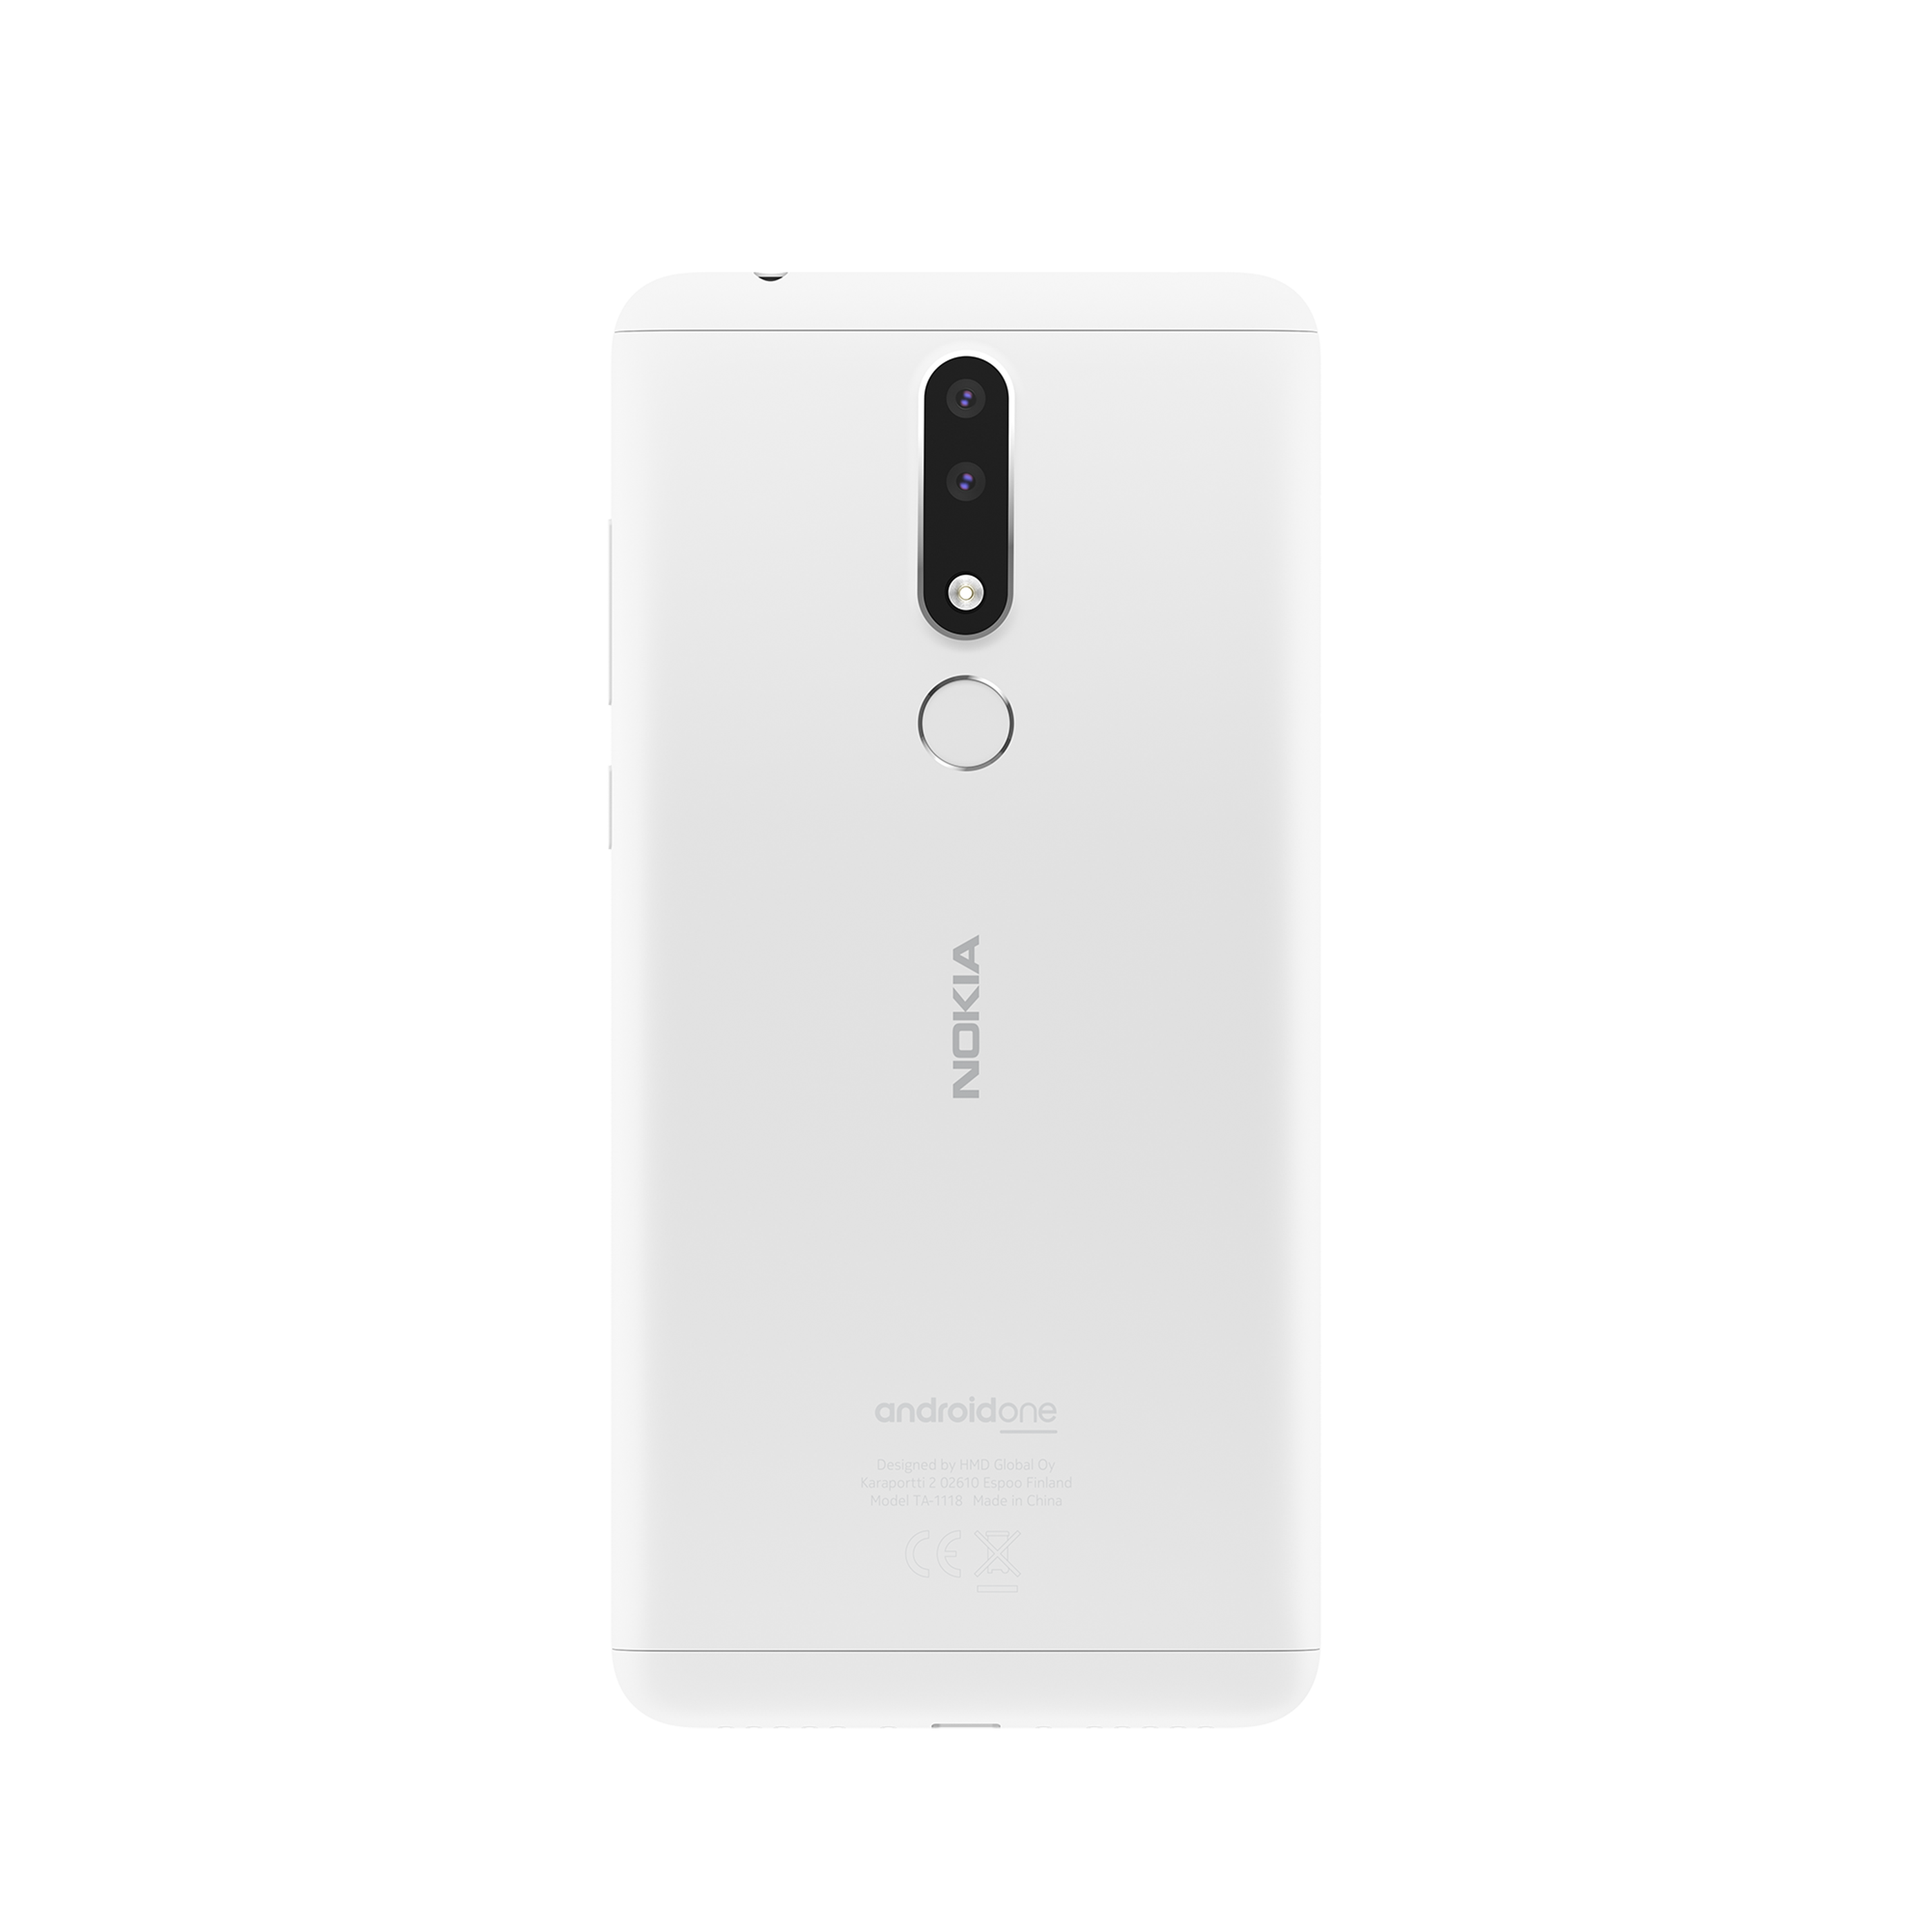 Nokia 3.1 Plus, Nokia 8110 4G Banana Phone Launched in India